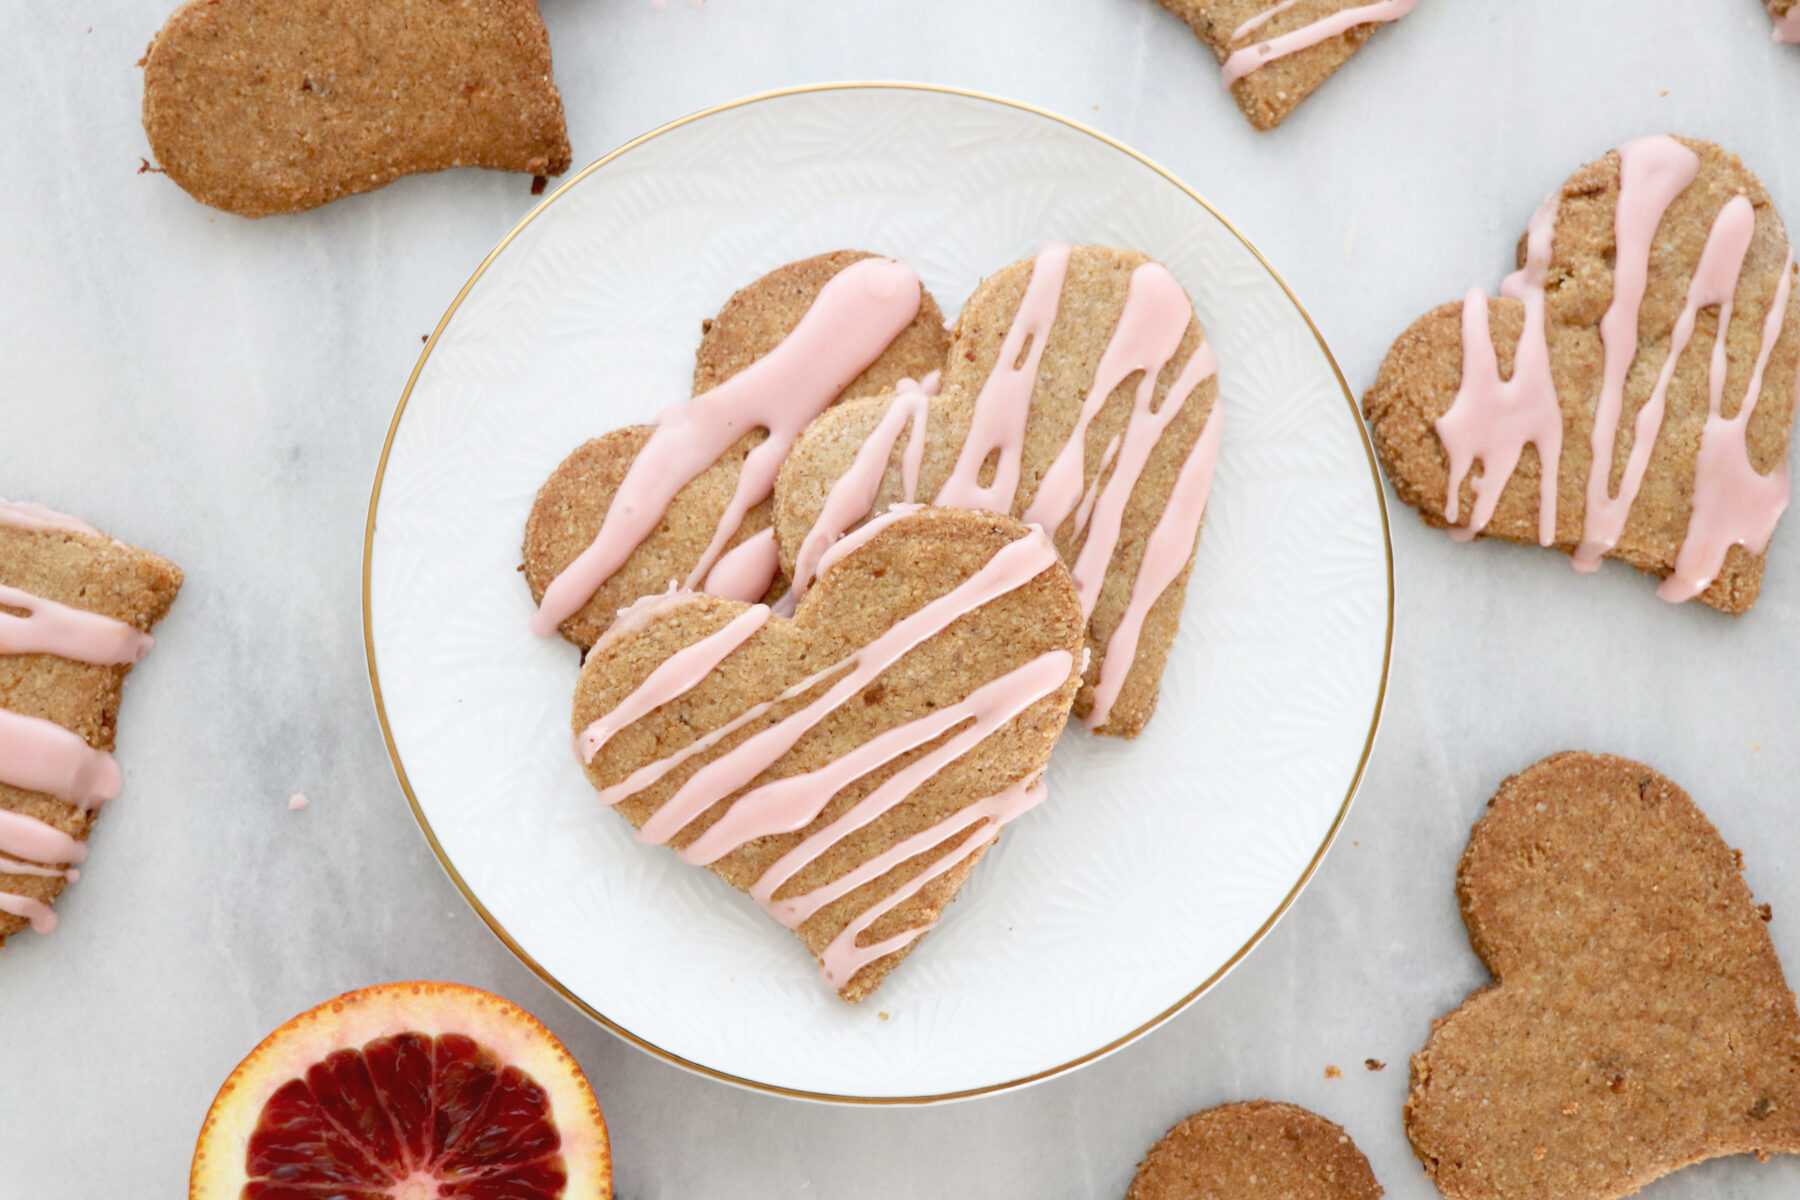 Heart shaped cookies with pink icing on top. Slice of blood orange in background.